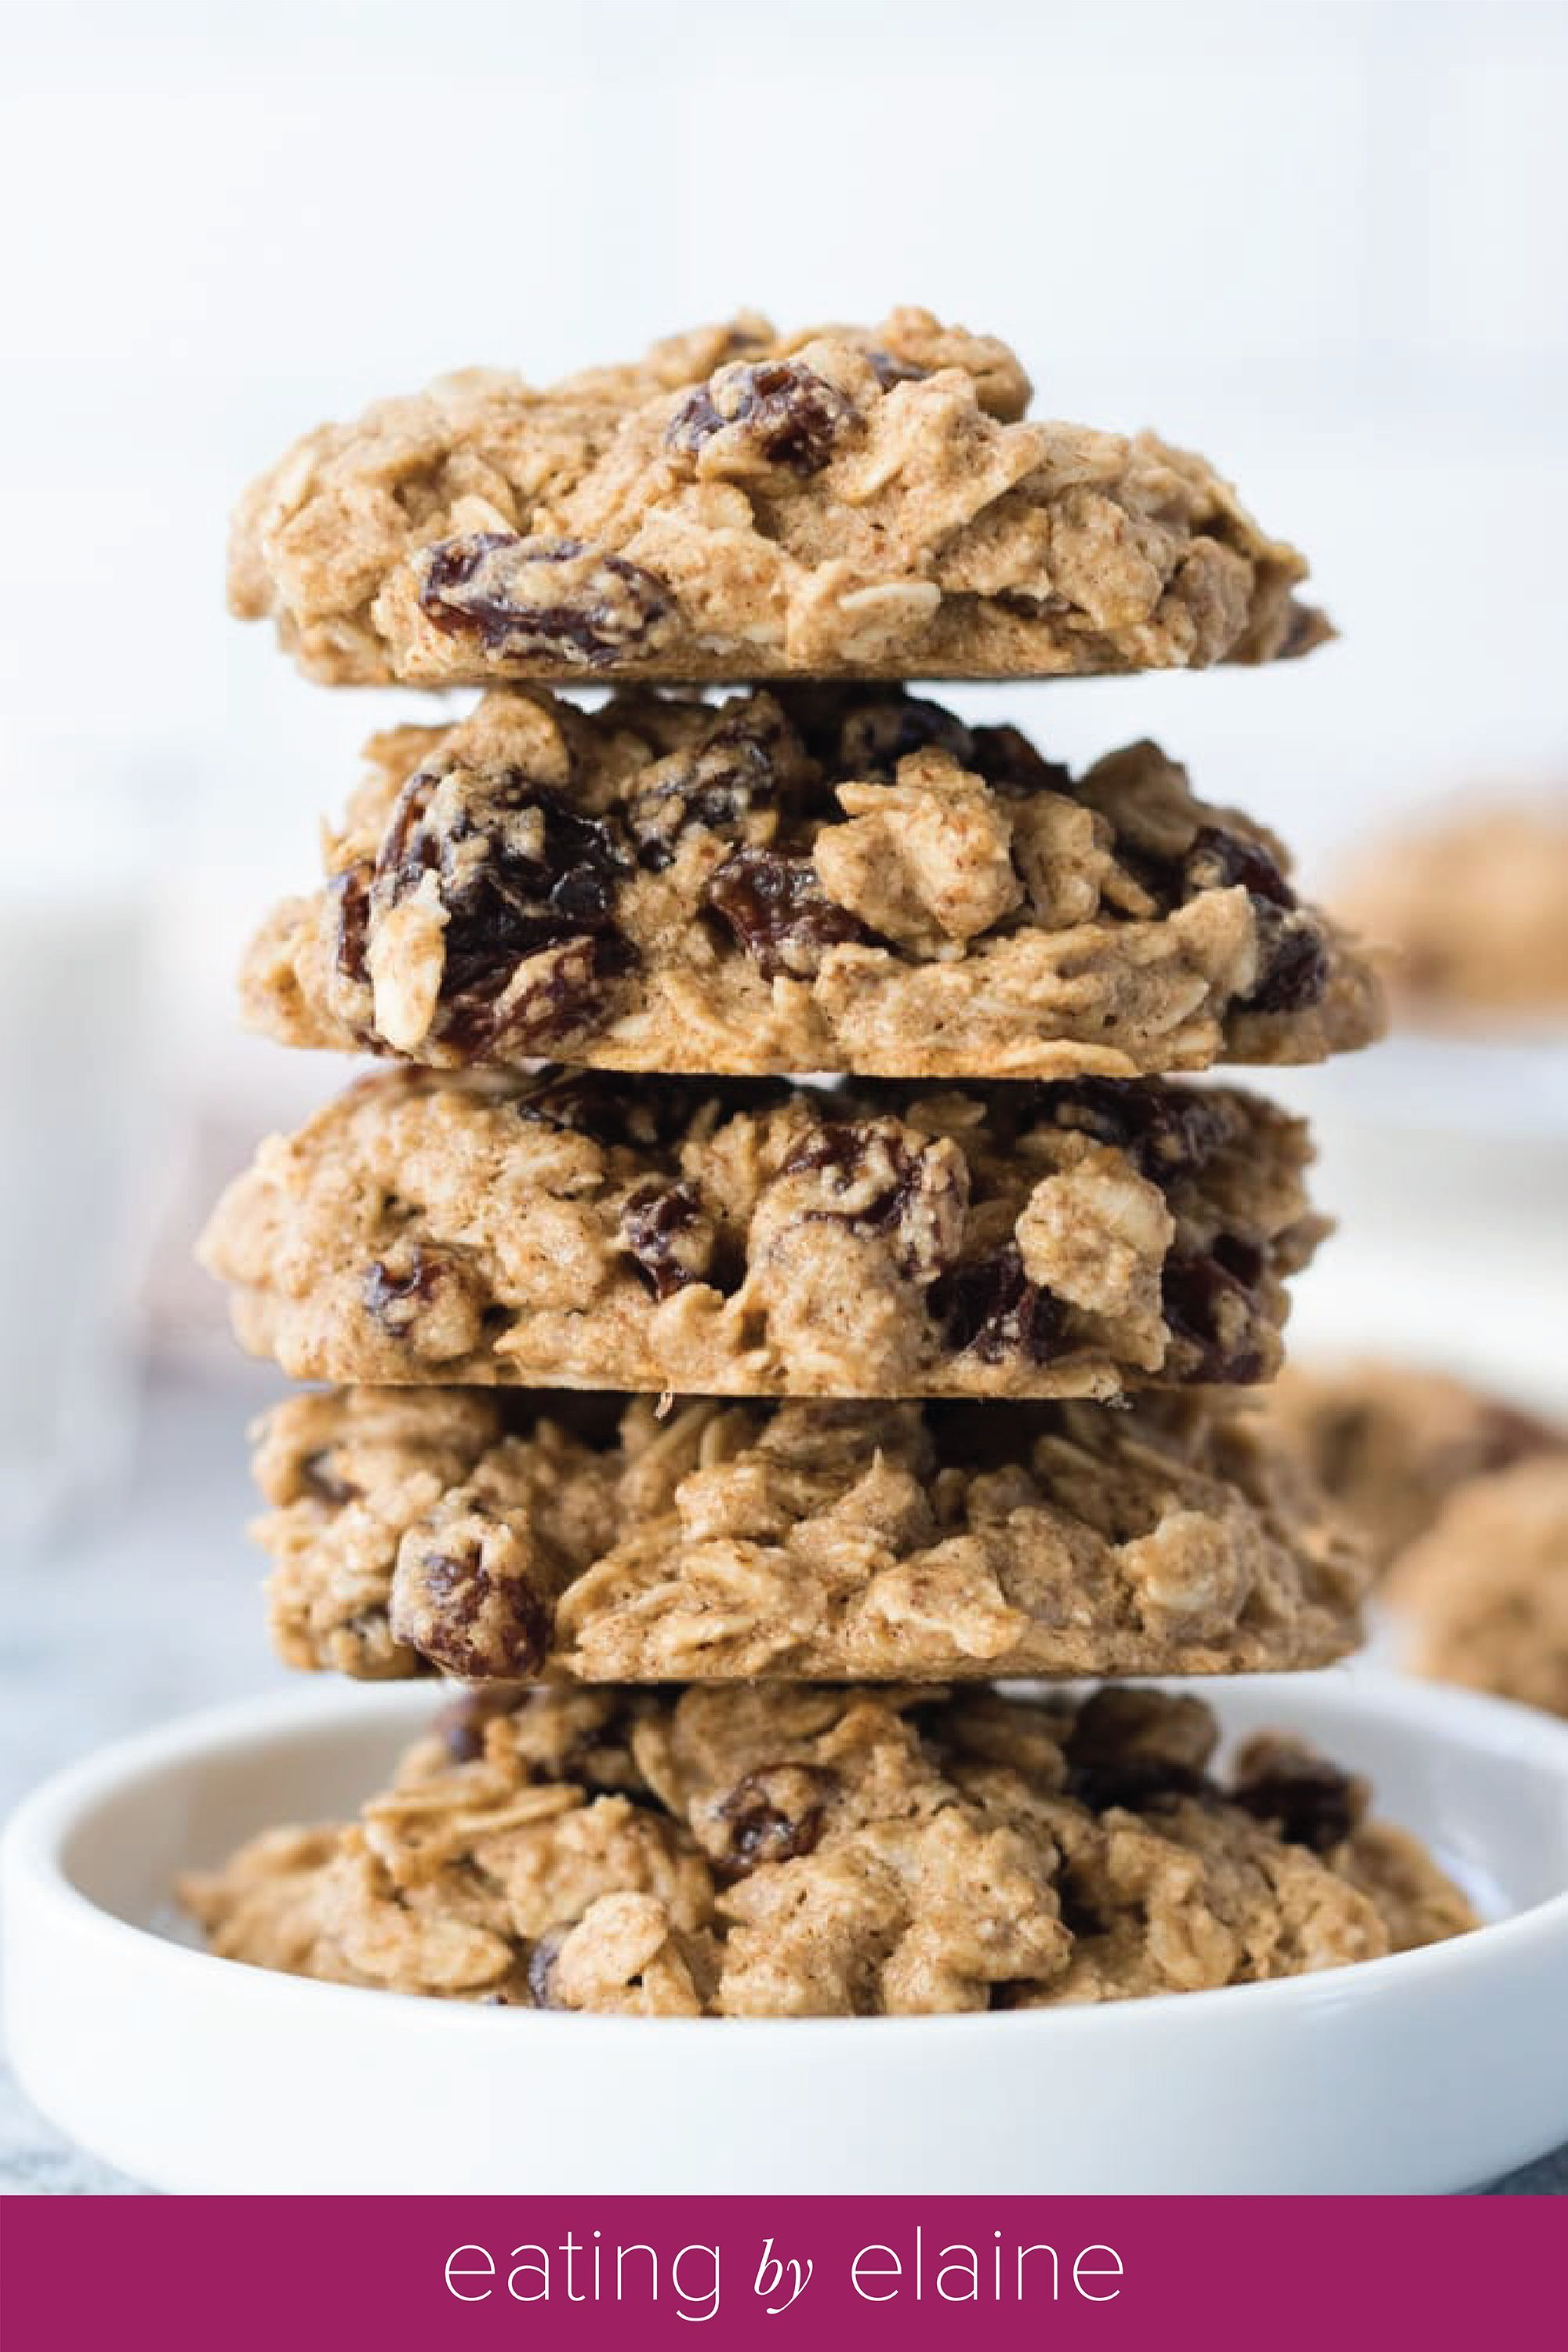 Soft And Chewy Vegan And Gluten Free Oatmeal Raisin Cookies Nut Free Refined Sugar Free In 2020 Sugar Free Oatmeal Cookies Vegan Cookies Recipes Sugar Free Eating